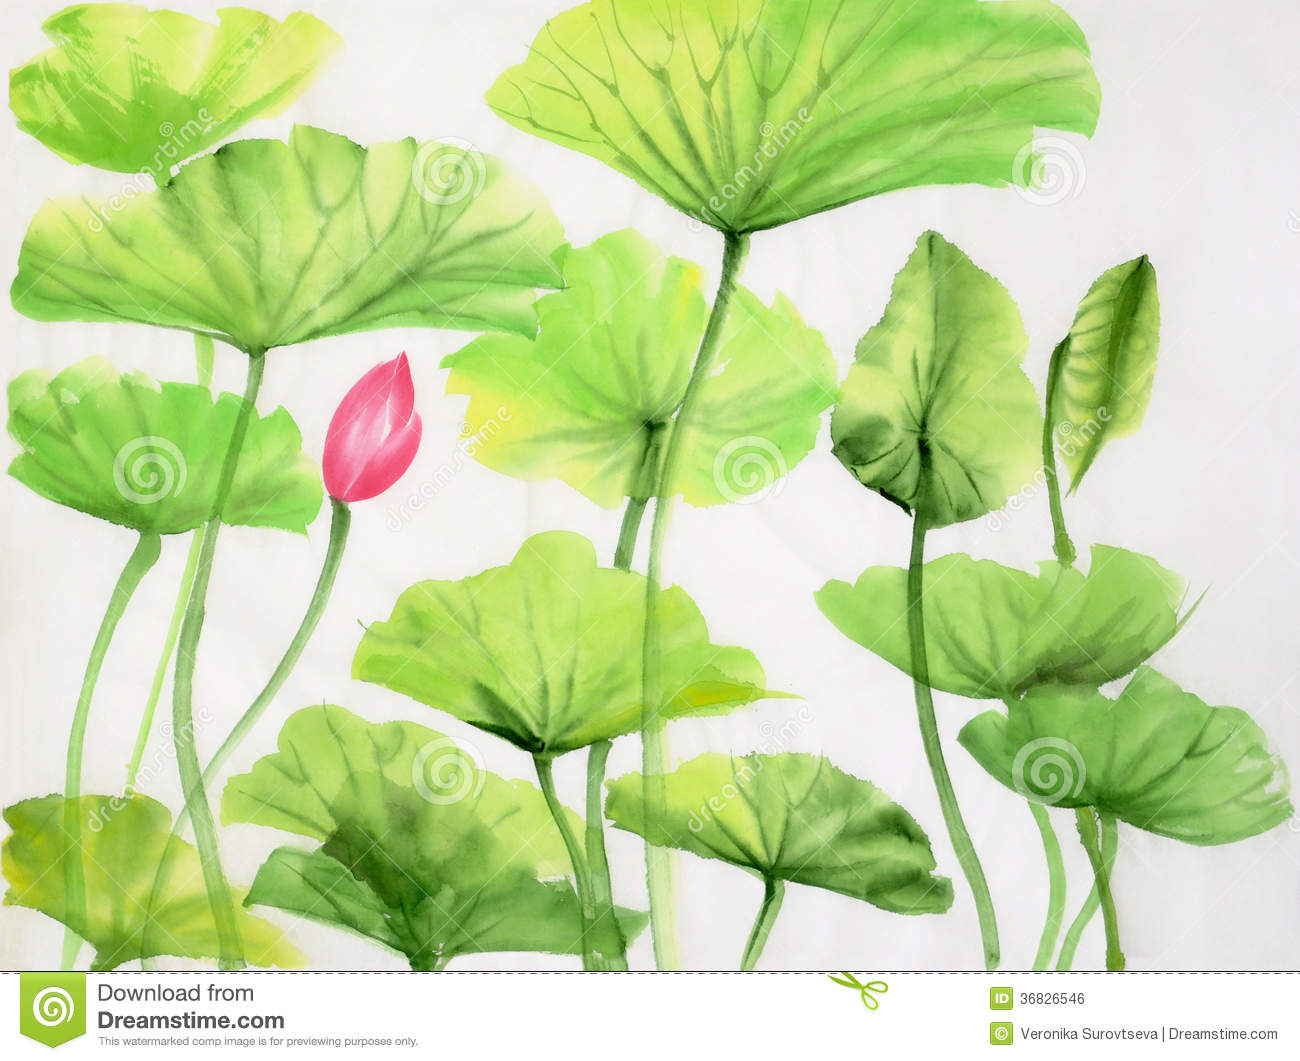 Watercolor Painting Of Lotus Leaves And Flower Royalty Free Stock.